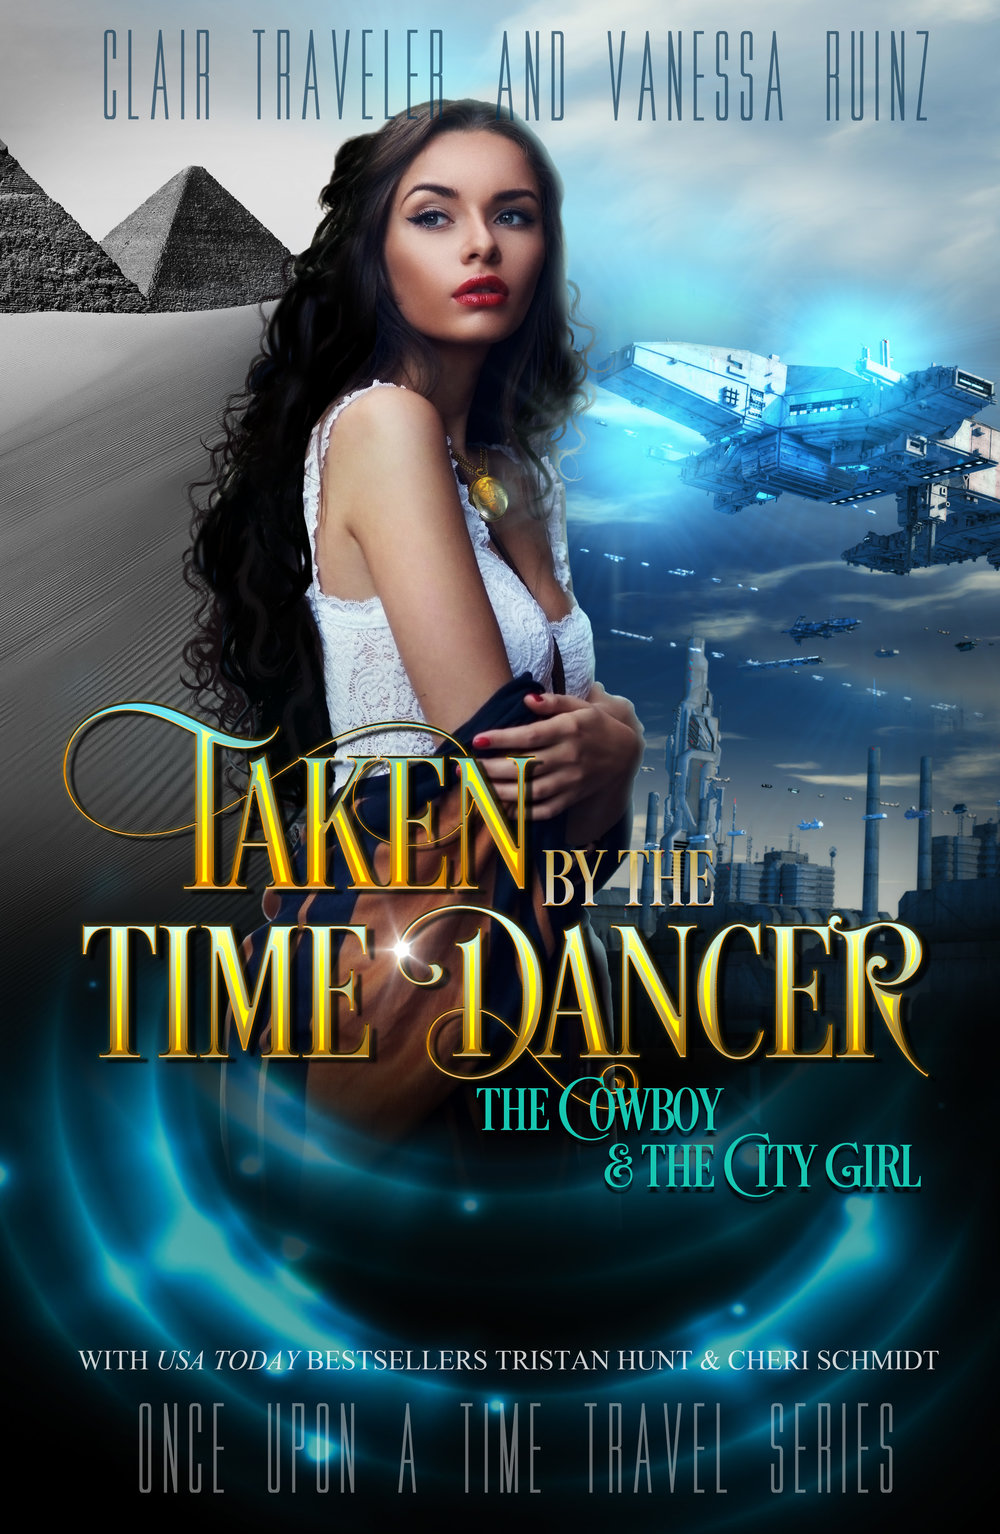 Once Upon a Time Travel - 1. Time Dancer2. Taken by the Time Dancer3. Trial of the Time Dancer****A time-traveling cowboy from the Old West meets his match in a savvy city girl from present-day New York!Billy the kid meets Back to the Future and 'the hilarity ensues!' Time Dancer is a romantic romp THROUGH the ages!